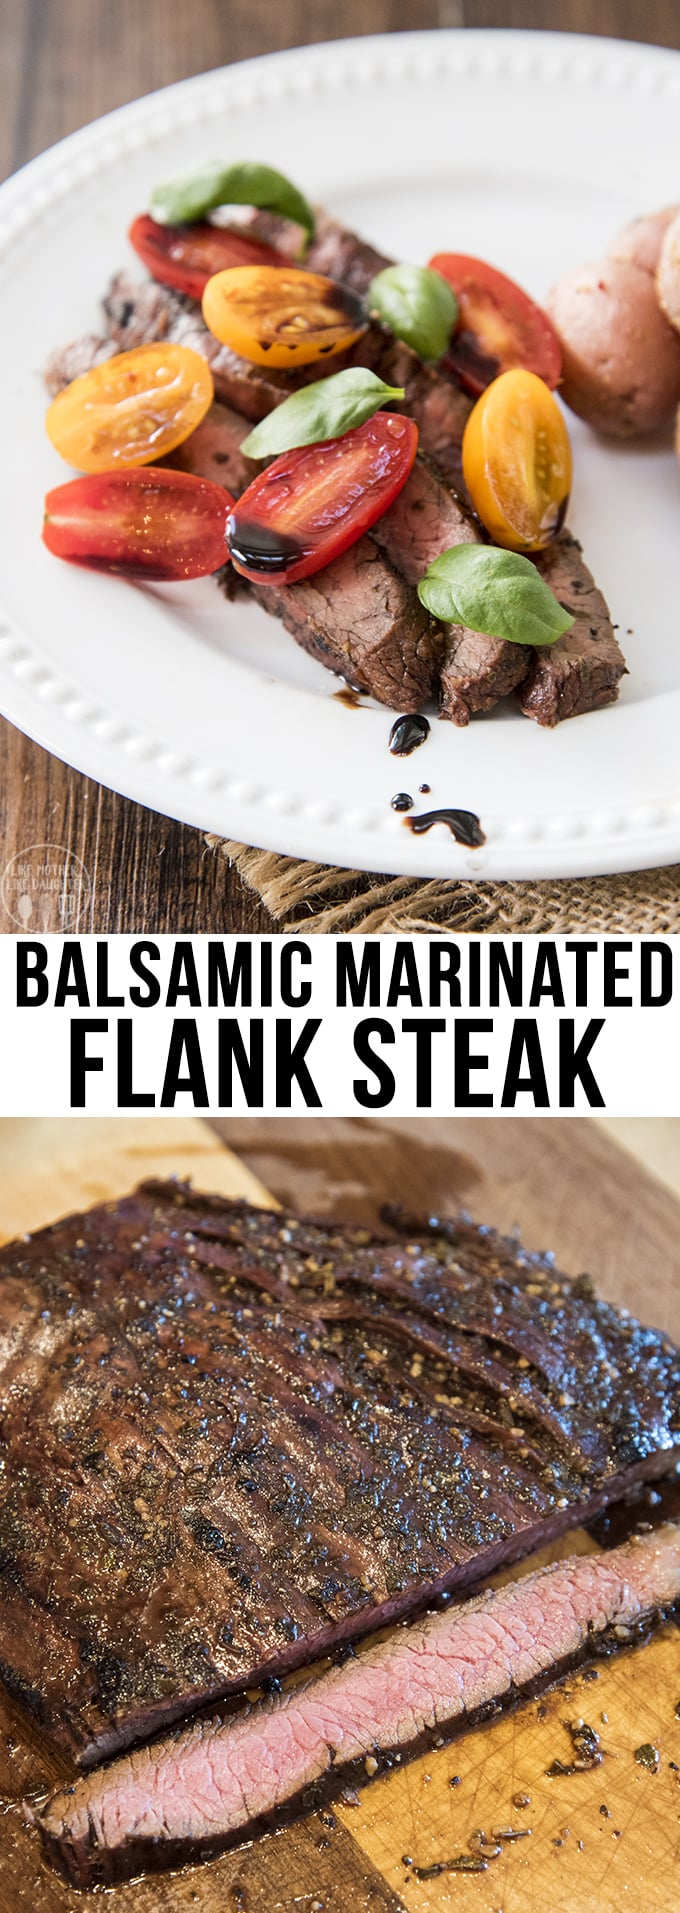 This balsamic marinated flank steak is packed full of delicious flavor, with the most tender meat cooked to perfection. Perfect served up with some veggies or potatoes.